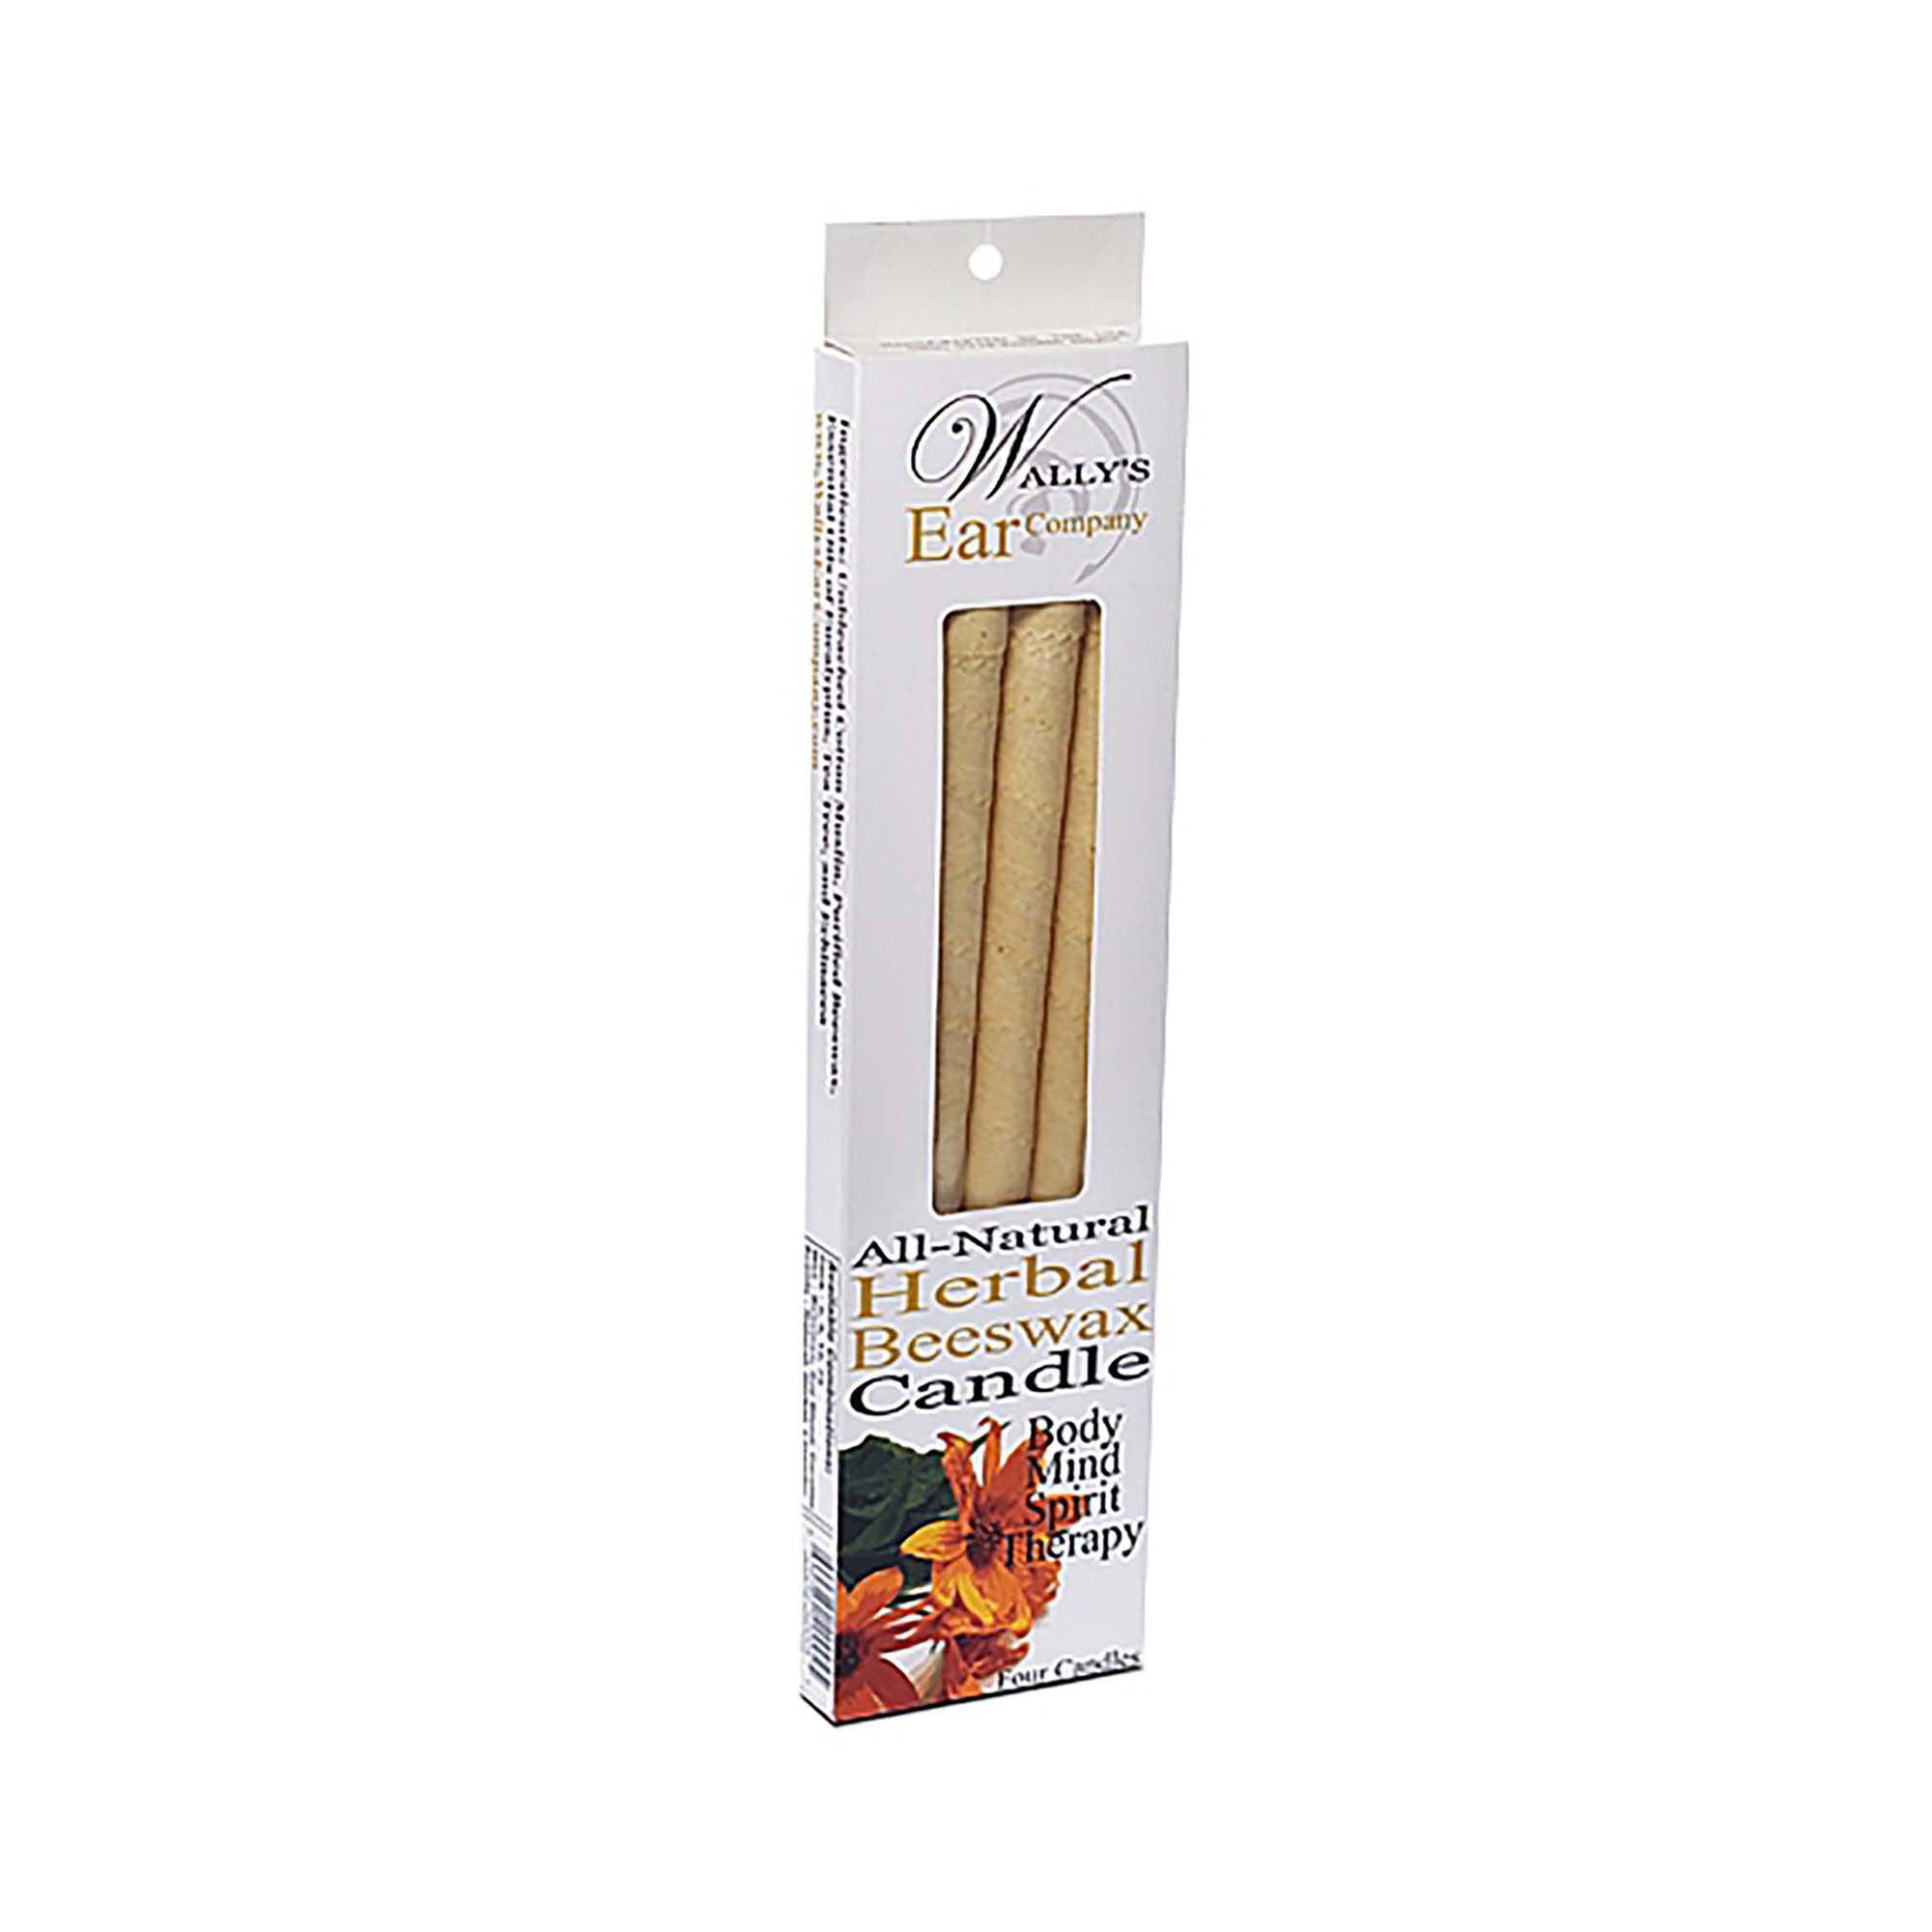 All natural herbal beeswax candle images solutioingenieria Choice Image